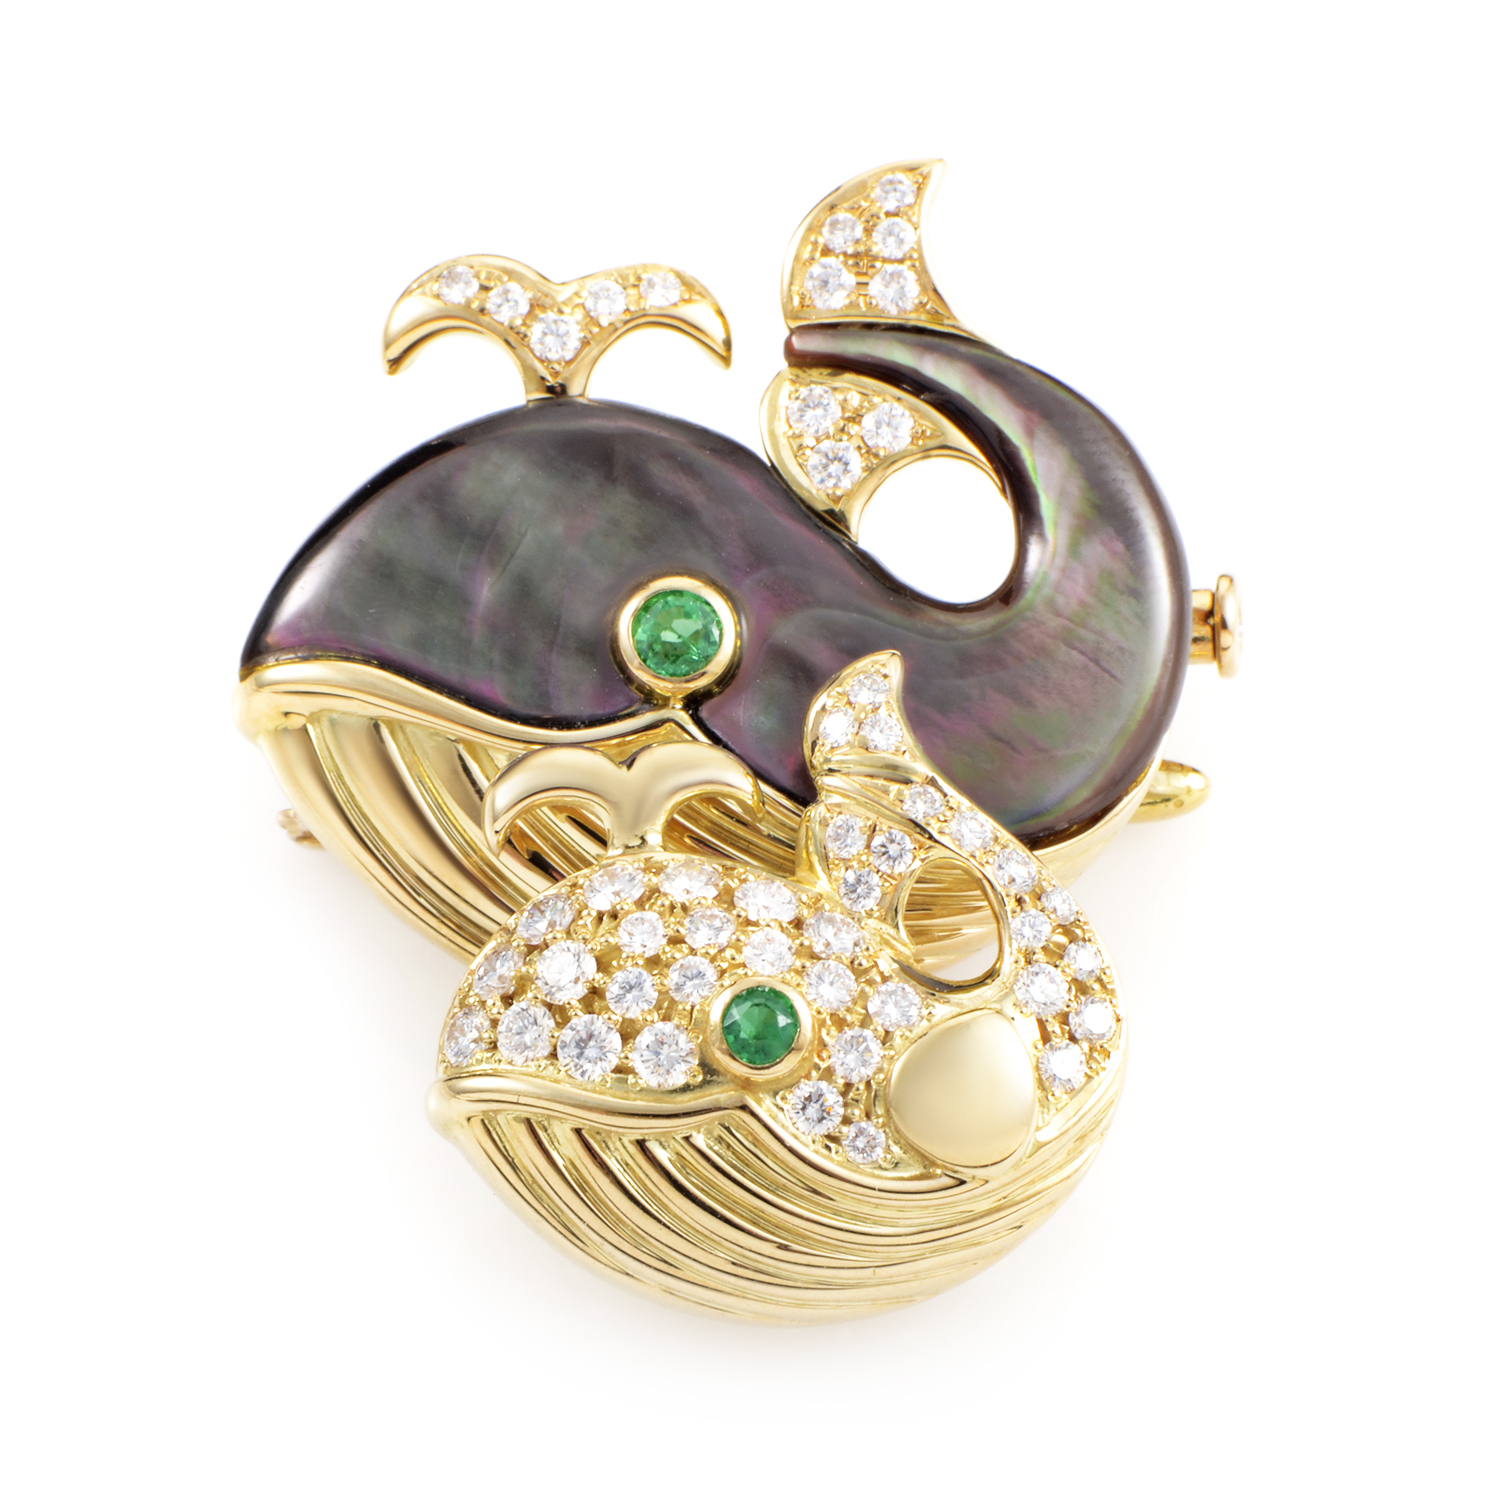 Waltham Women's 18K Yellow Gold Precious Gemstone Whale Brooch